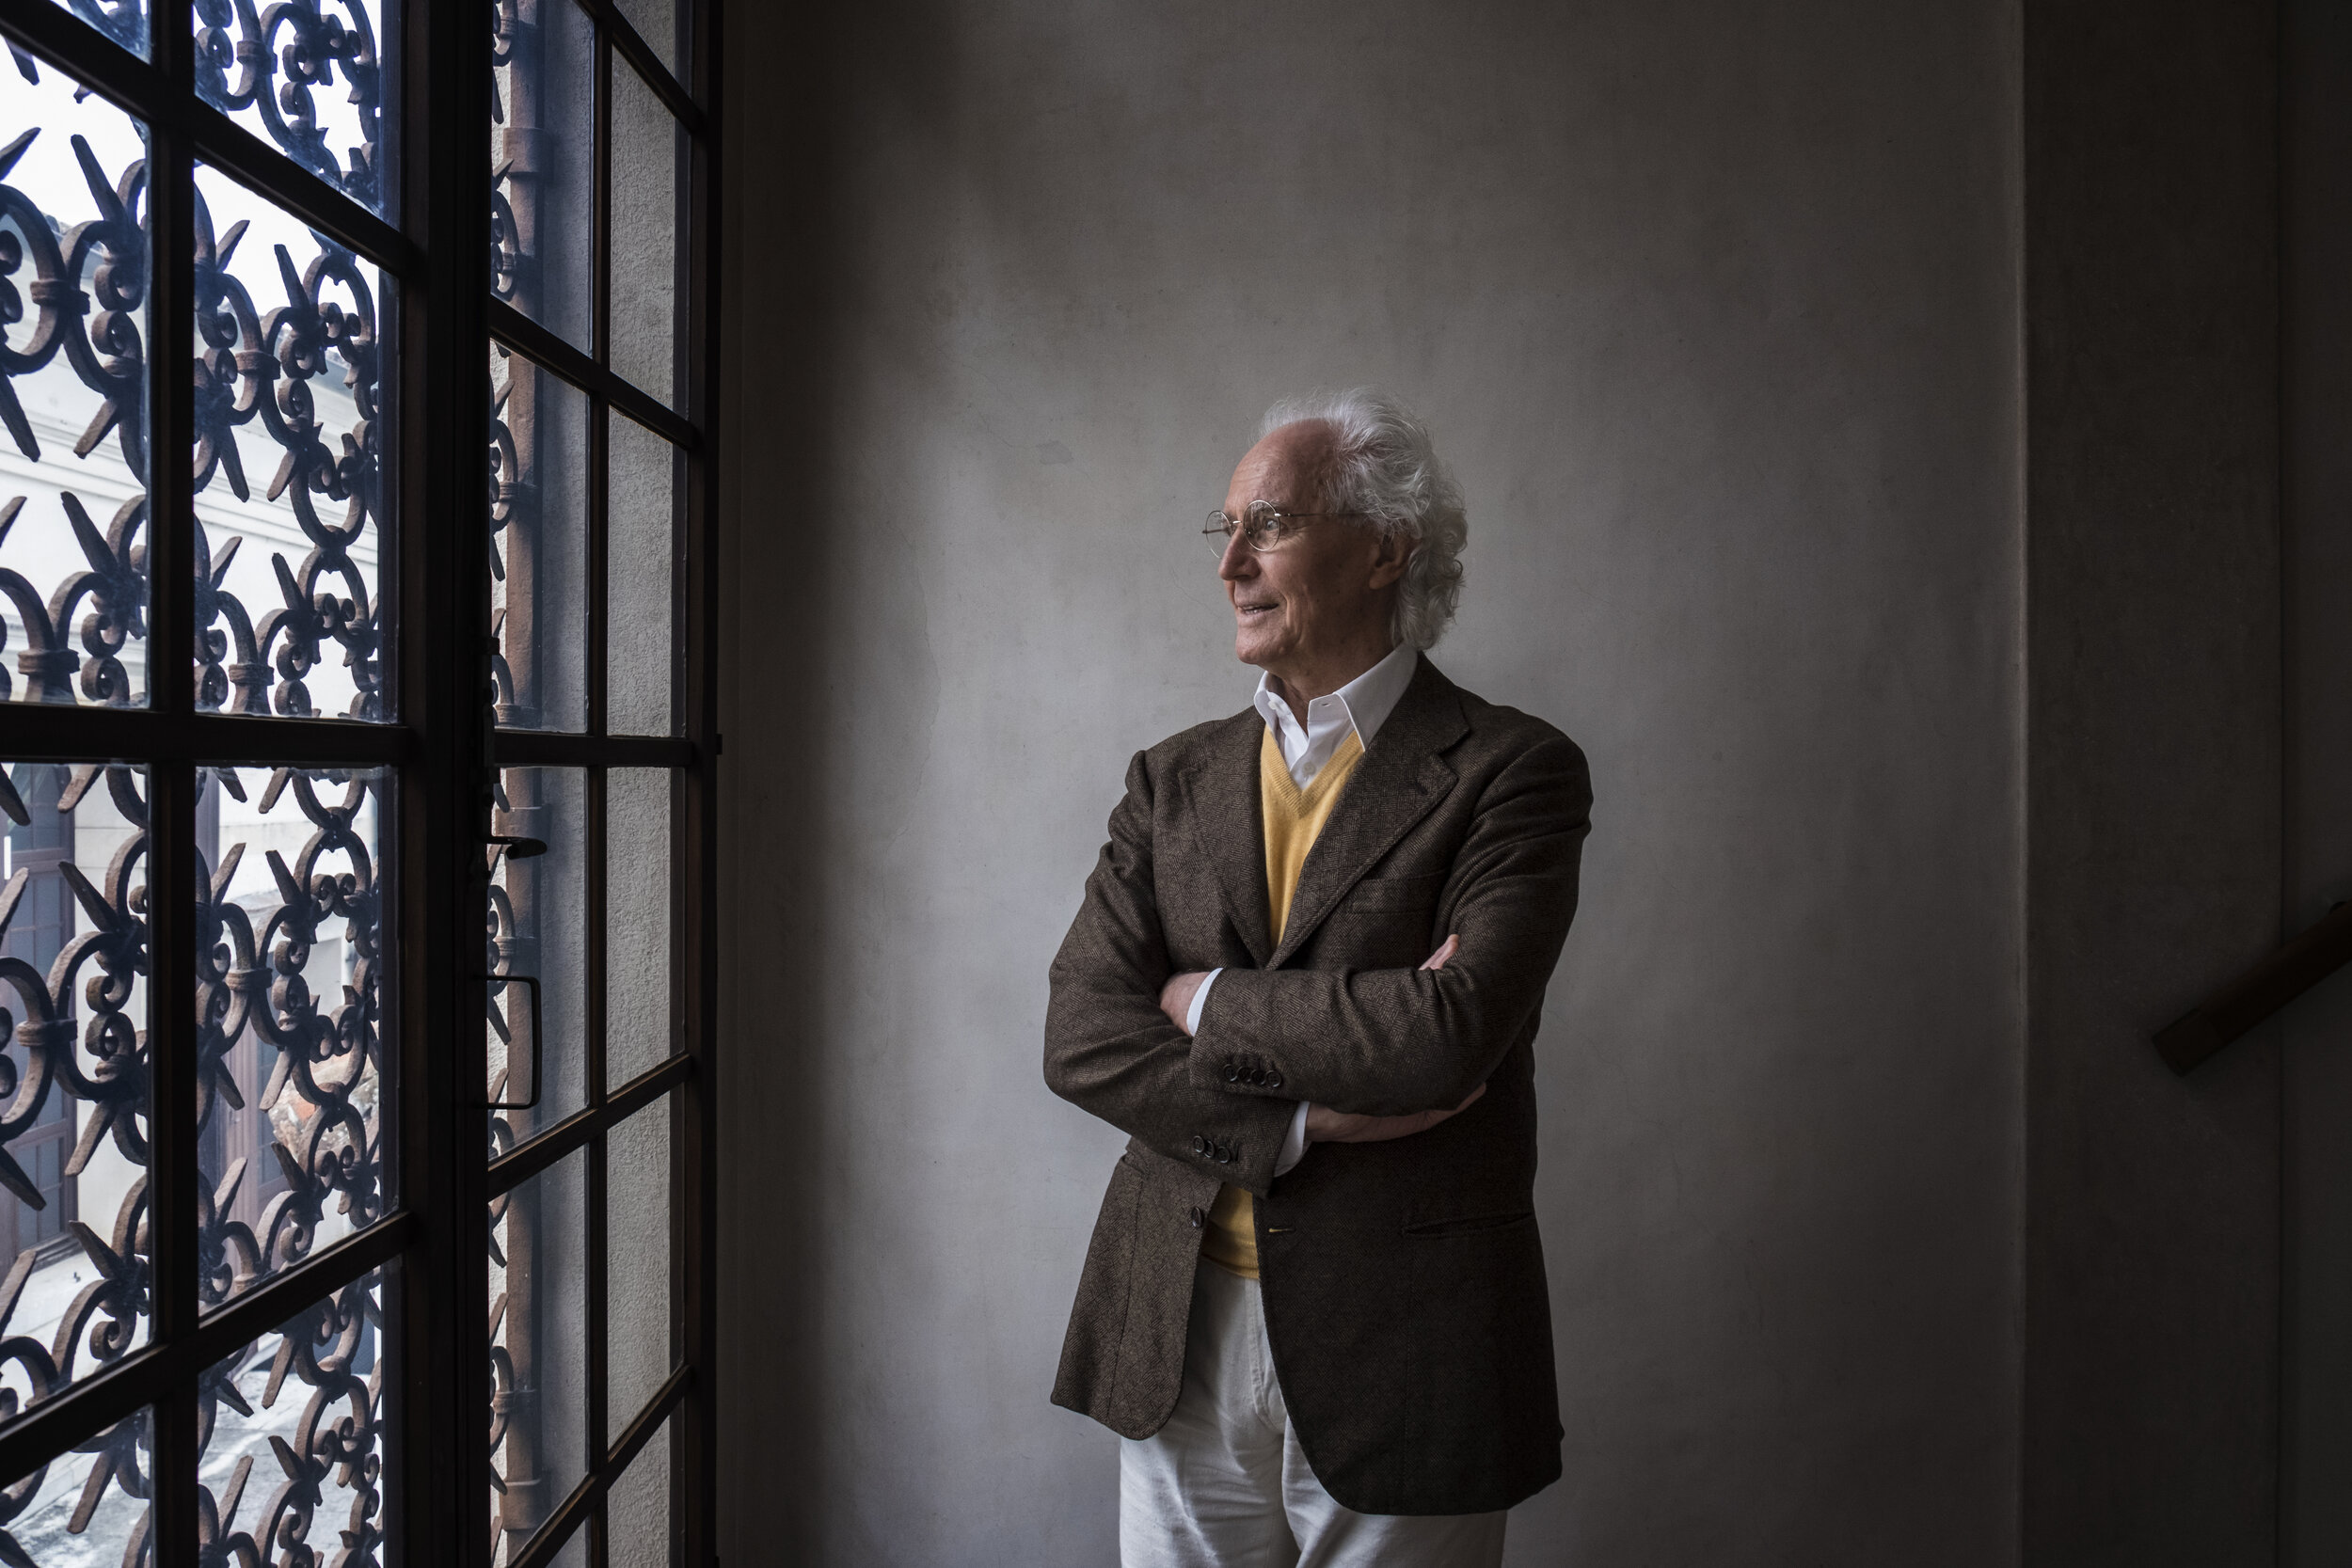 Luciano Benetton, founder at Benetton Group. On assignment for Der Spiegel